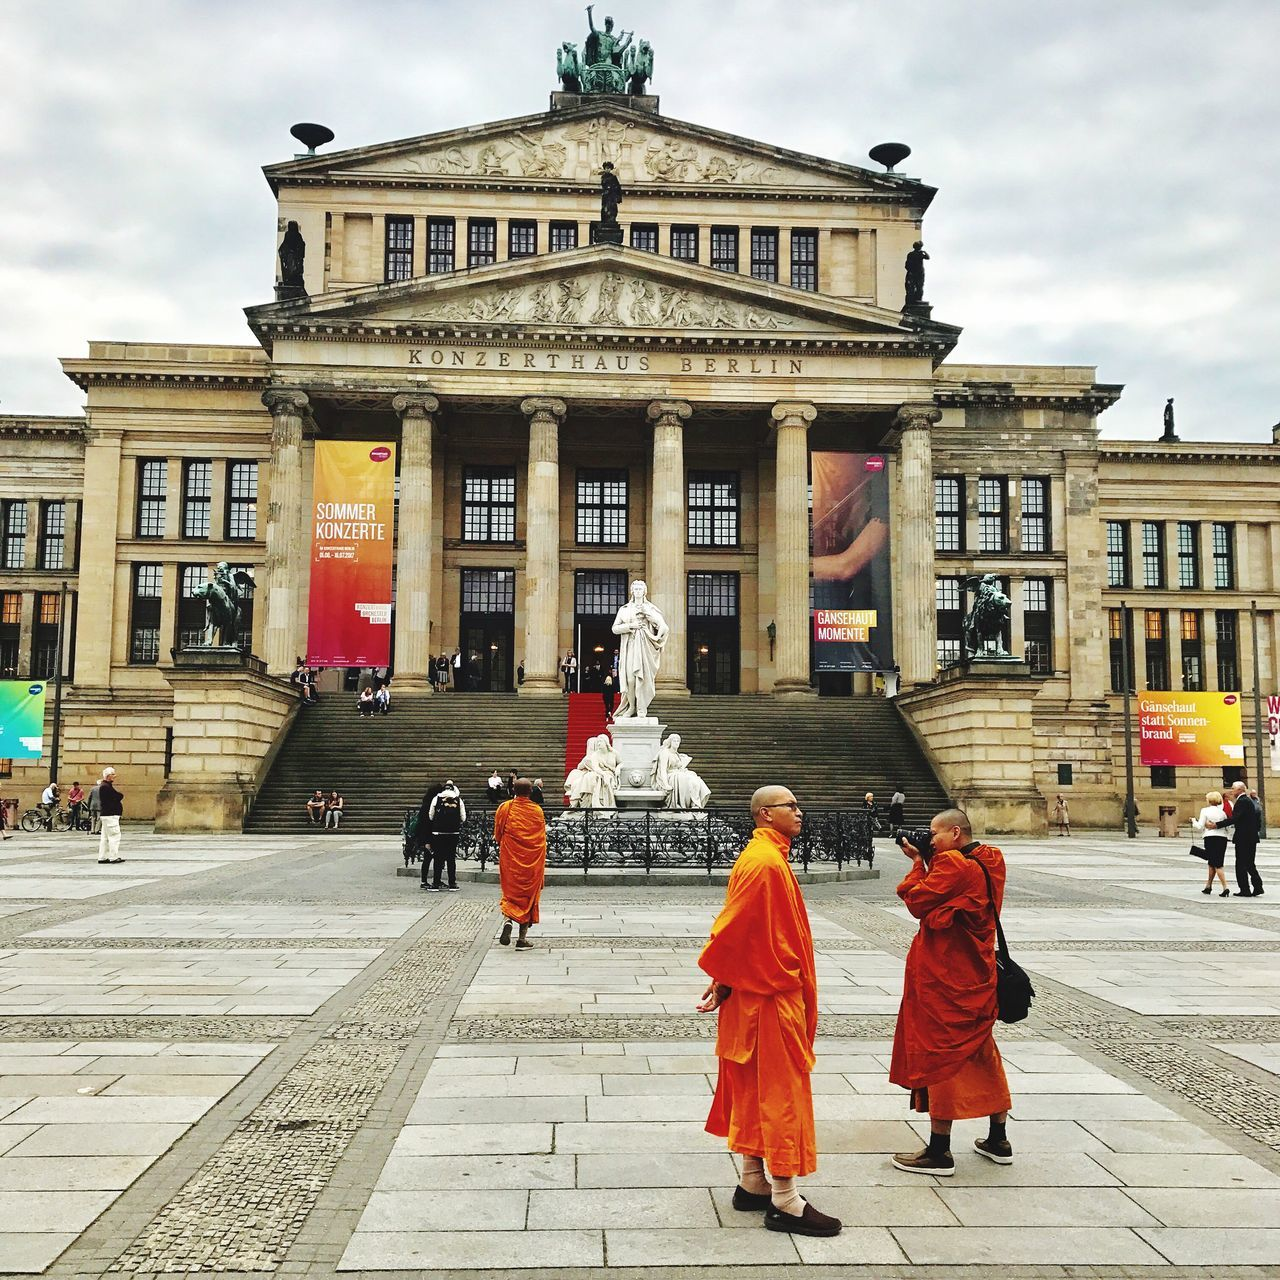 architecture, built structure, building exterior, real people, statue, architectural column, travel destinations, women, sculpture, sky, men, history, outdoors, facade, cloud - sky, large group of people, day, city, lifestyles, adult, people